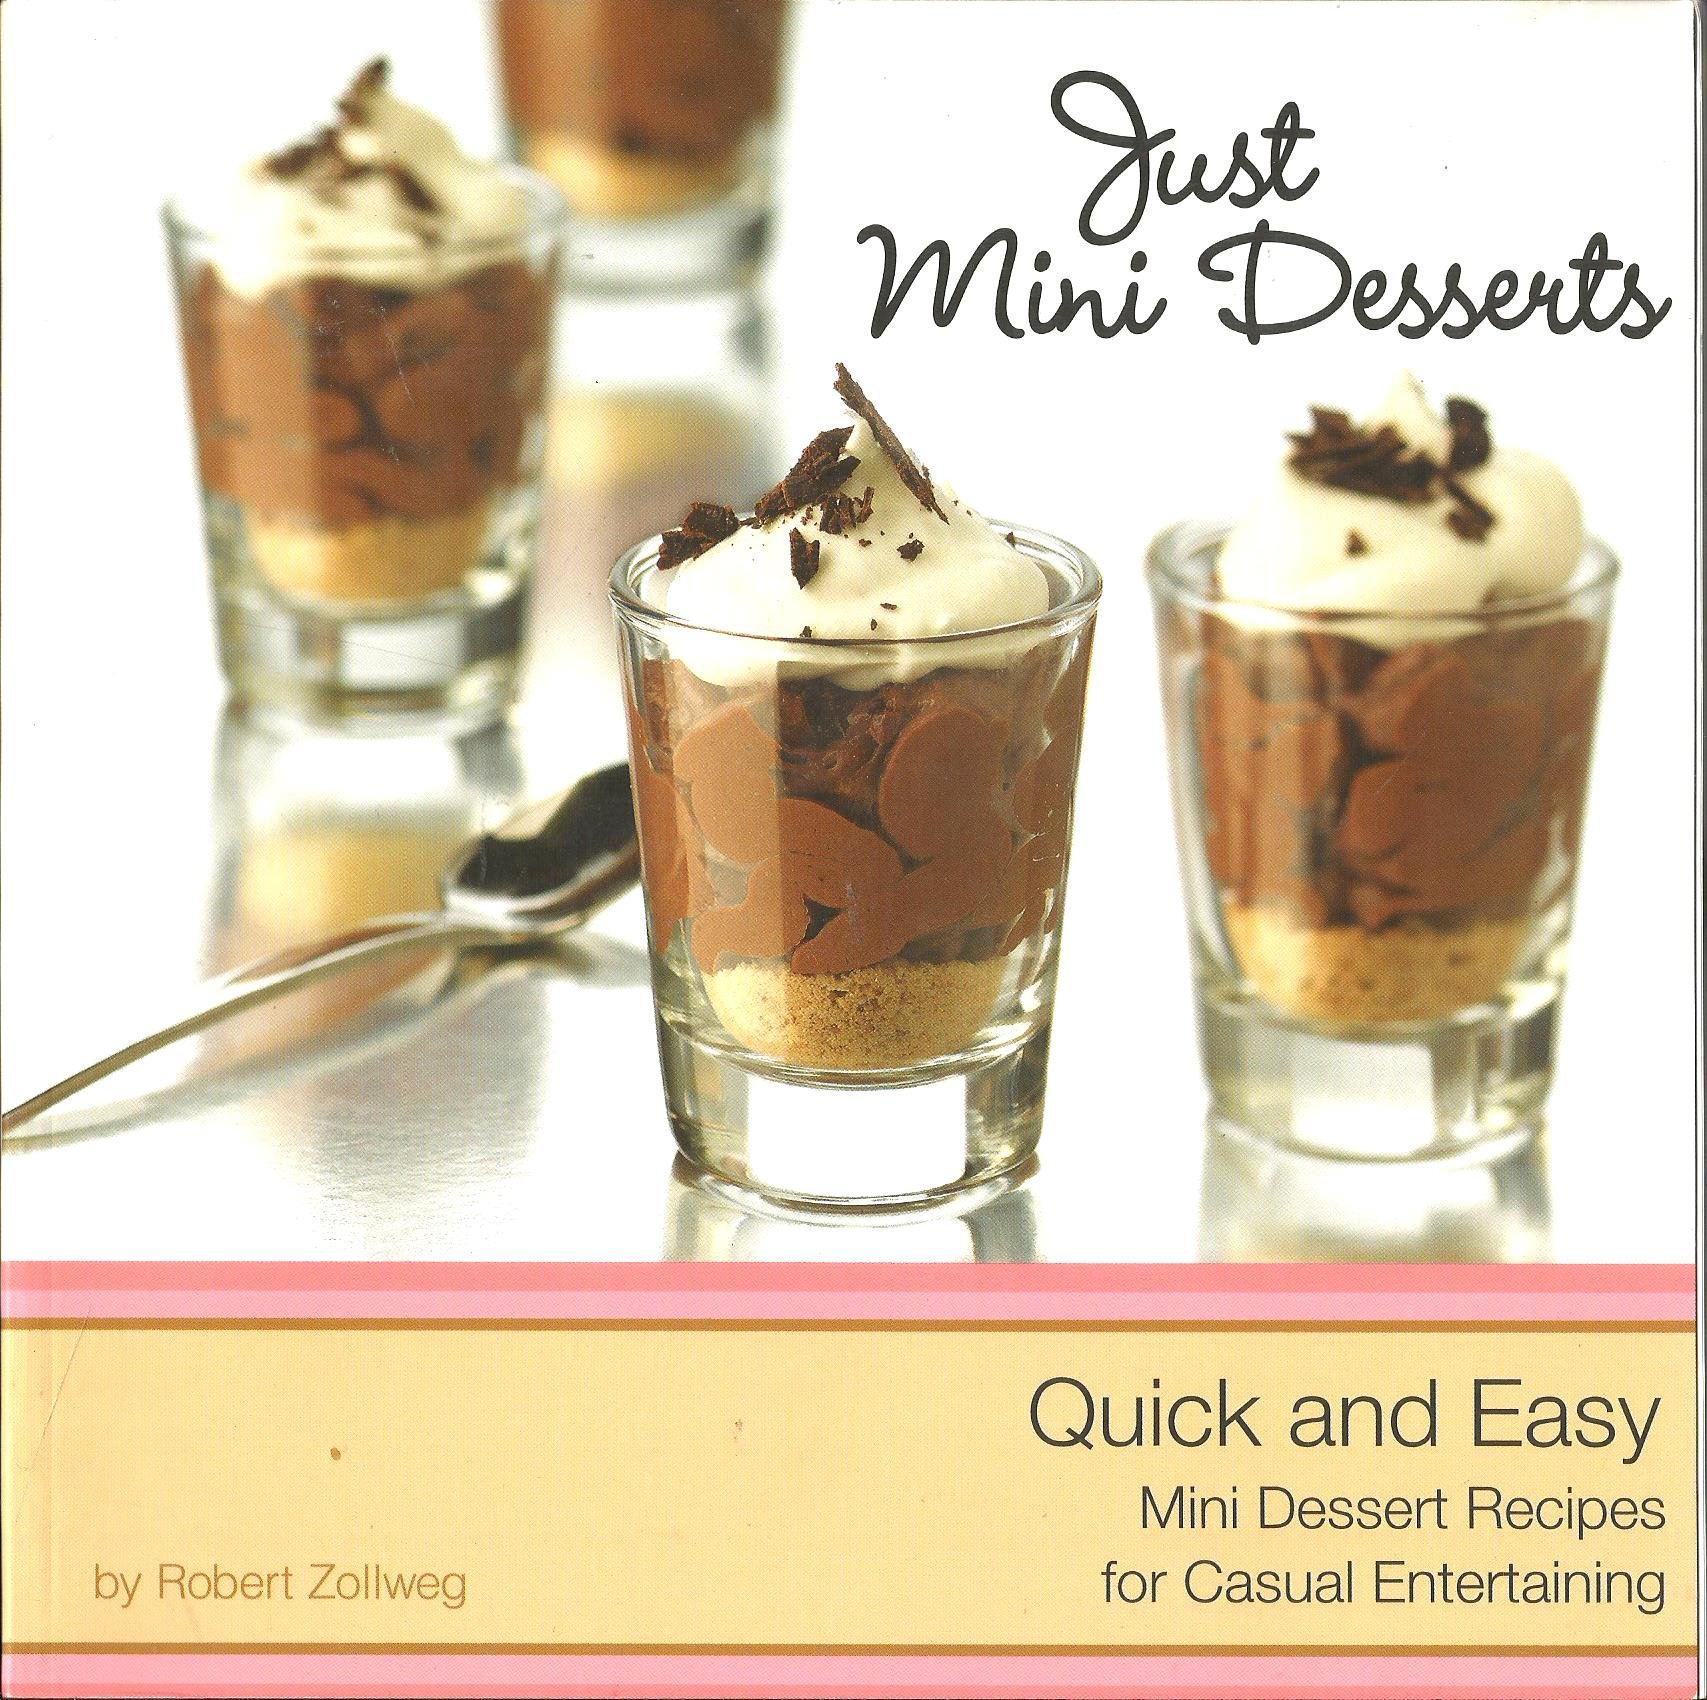 Just Mini Desserts Quick And Easy Dessert Recipes For Casual Entertaining Robert Zollweg 9780578058160 Amazon Books